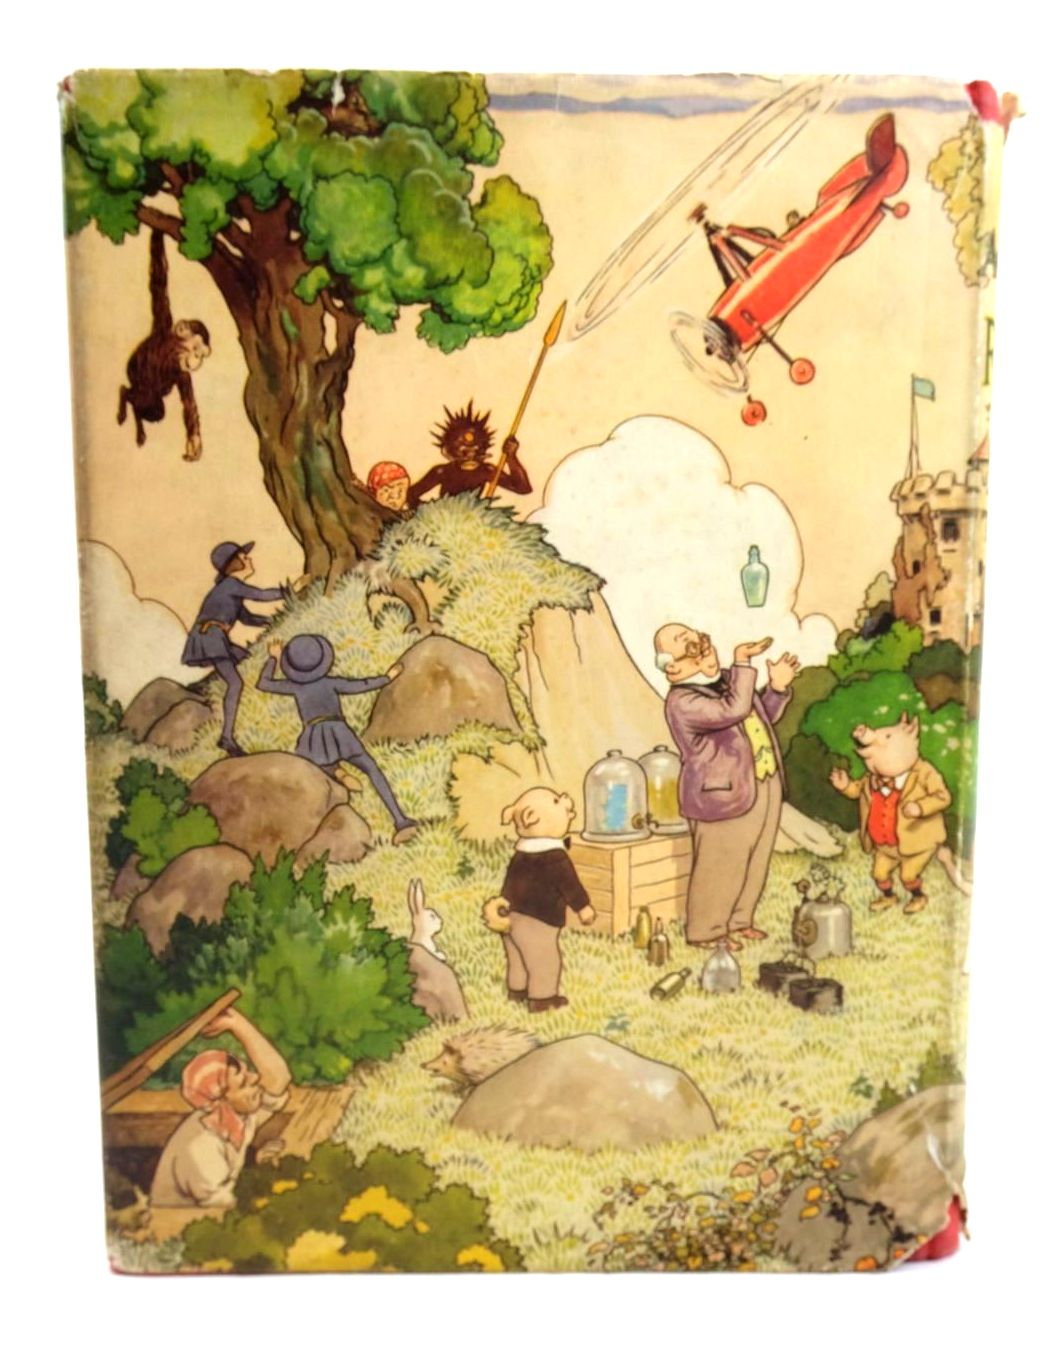 Photo of RUPERT ANNUAL 1936 - THE NEW ADVENTURES OF RUPERT written by Bestall, Alfred illustrated by Bestall, Alfred published by Daily Express (STOCK CODE: 1319929)  for sale by Stella & Rose's Books